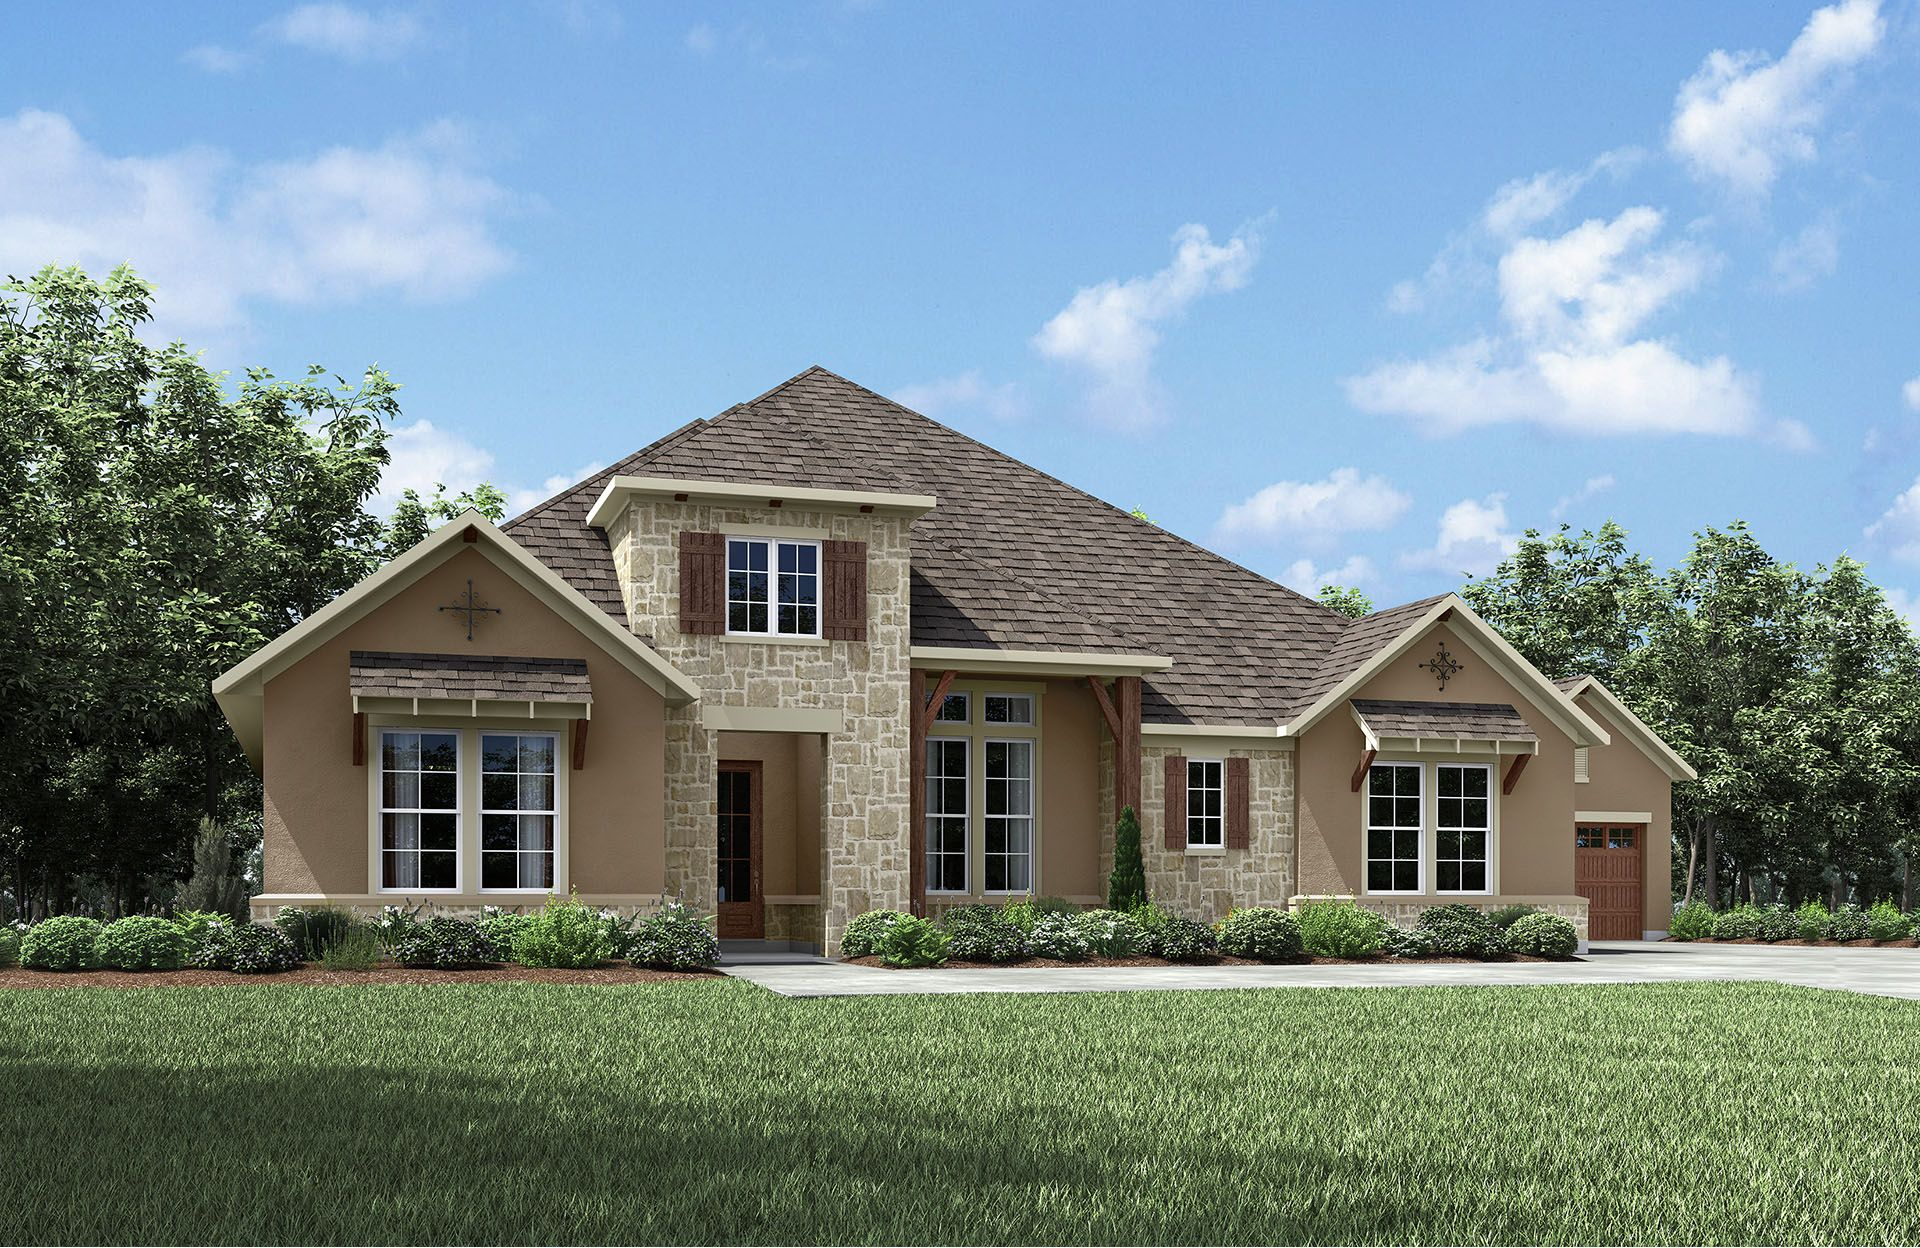 Single Family for Sale at Belterra - Castella Ii 184 Hazy Hills Loop Dripping Springs, Texas 78620 United States